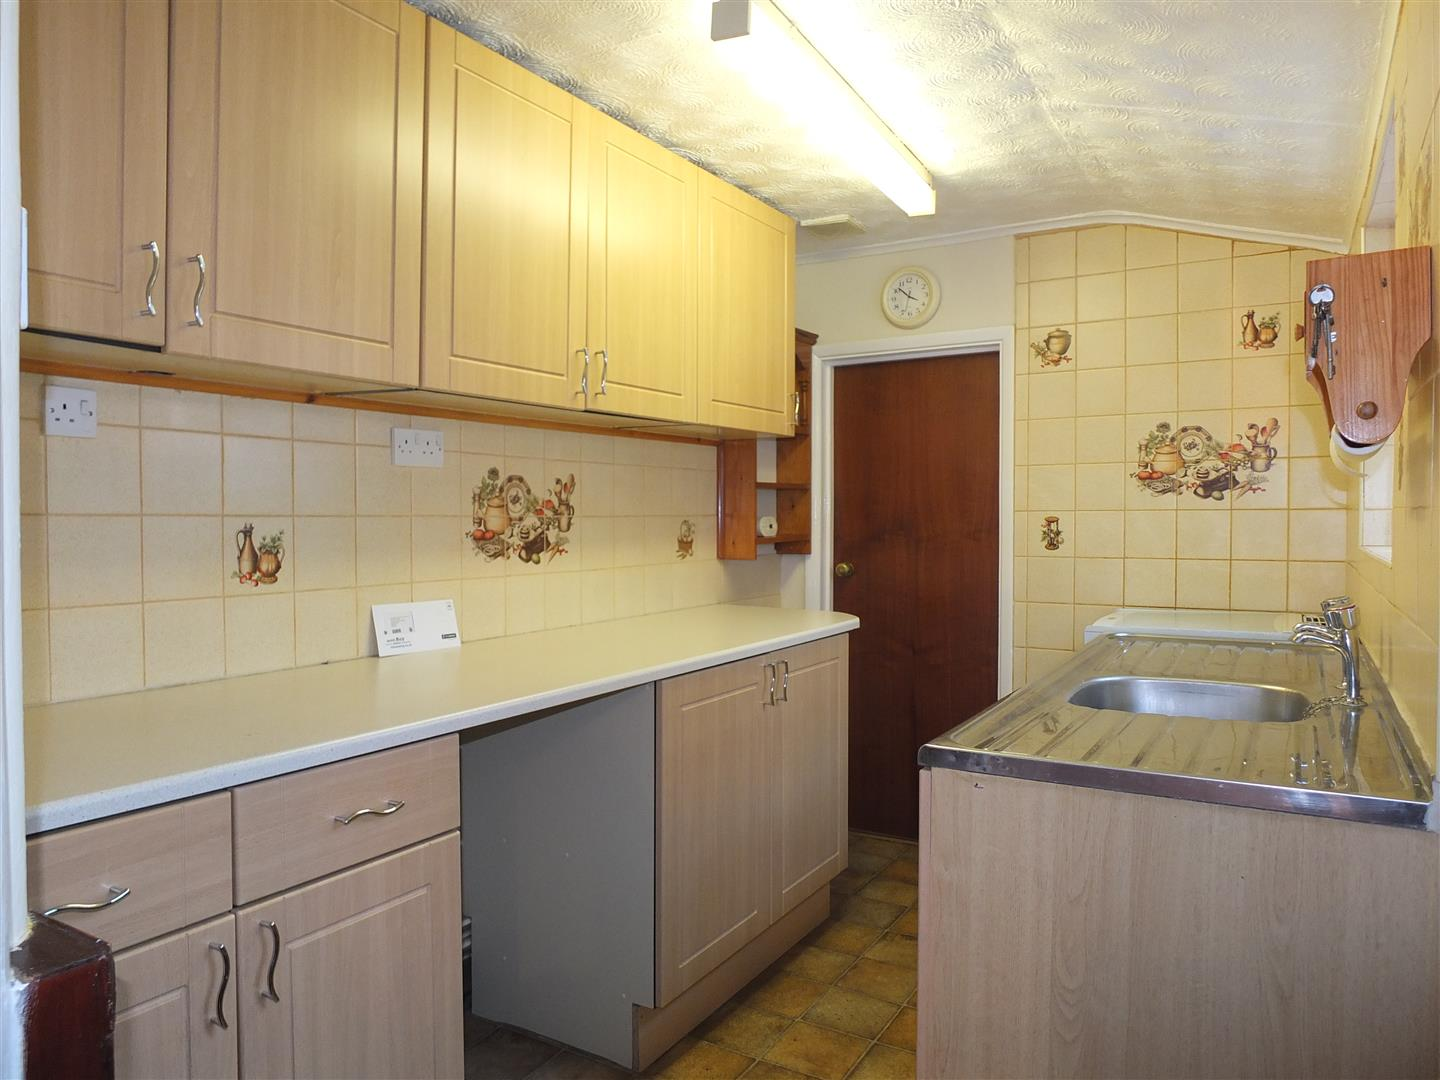 3 bed house to rent in Sutton Bridge Spalding, PE12 9UJ  - Property Image 4